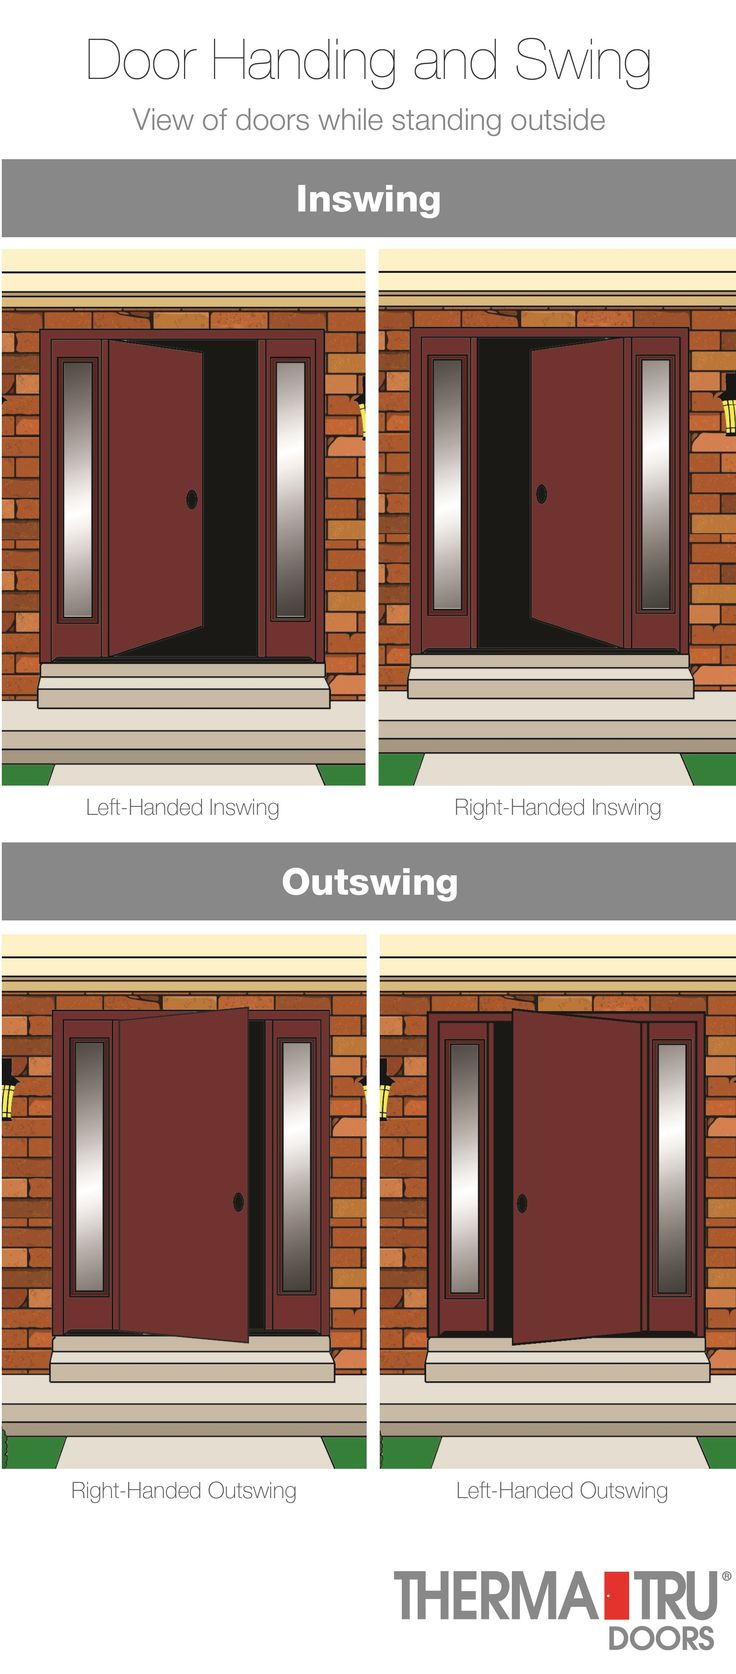 Considering a Door Do Over? Here's a handy infographic to help you determine your door's handing and swing. Black Millwork Co in Allendale, NJ has friendly and knowledgeable doors specialists that will walk you through our beautiful doors showroom (not shown in the image) in Allendale, NJ, while answering any questions and concerns for your home or commercial residence's remodel or new construction. www.blackmillwork.com